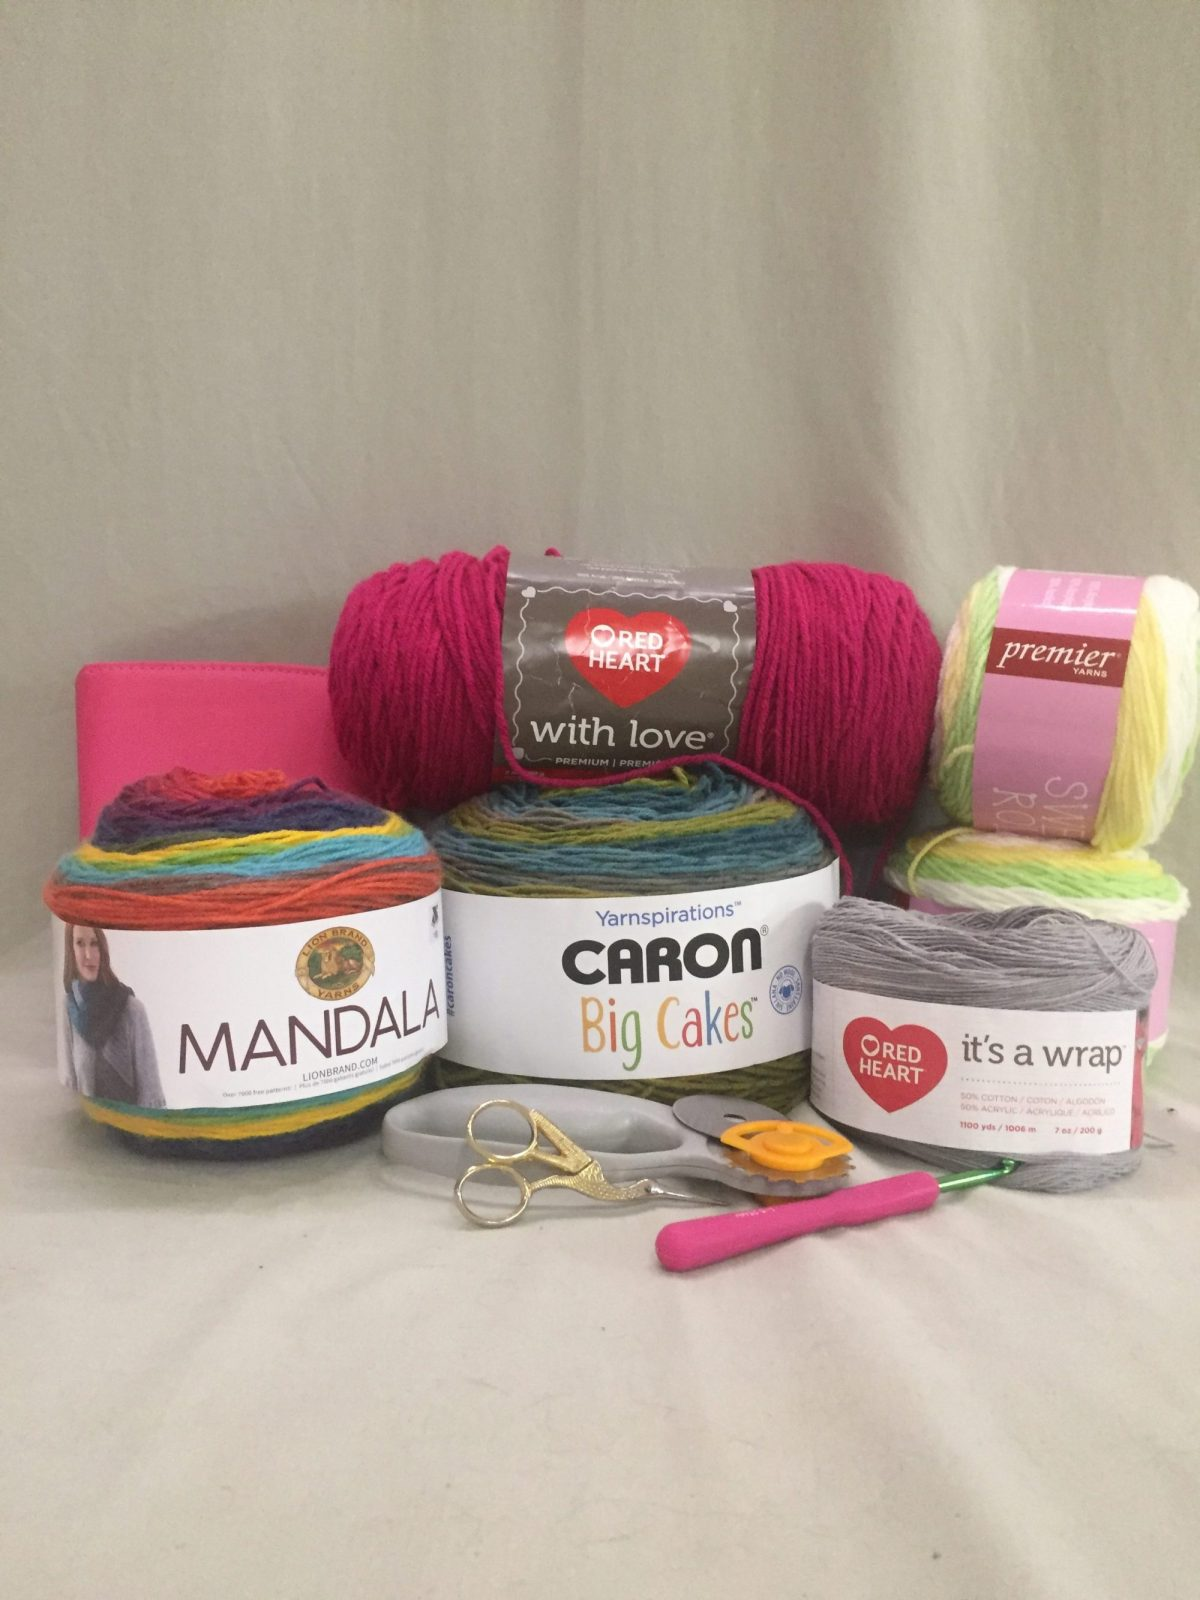 Shopping for Crochet Supplies Using Amazon Prime